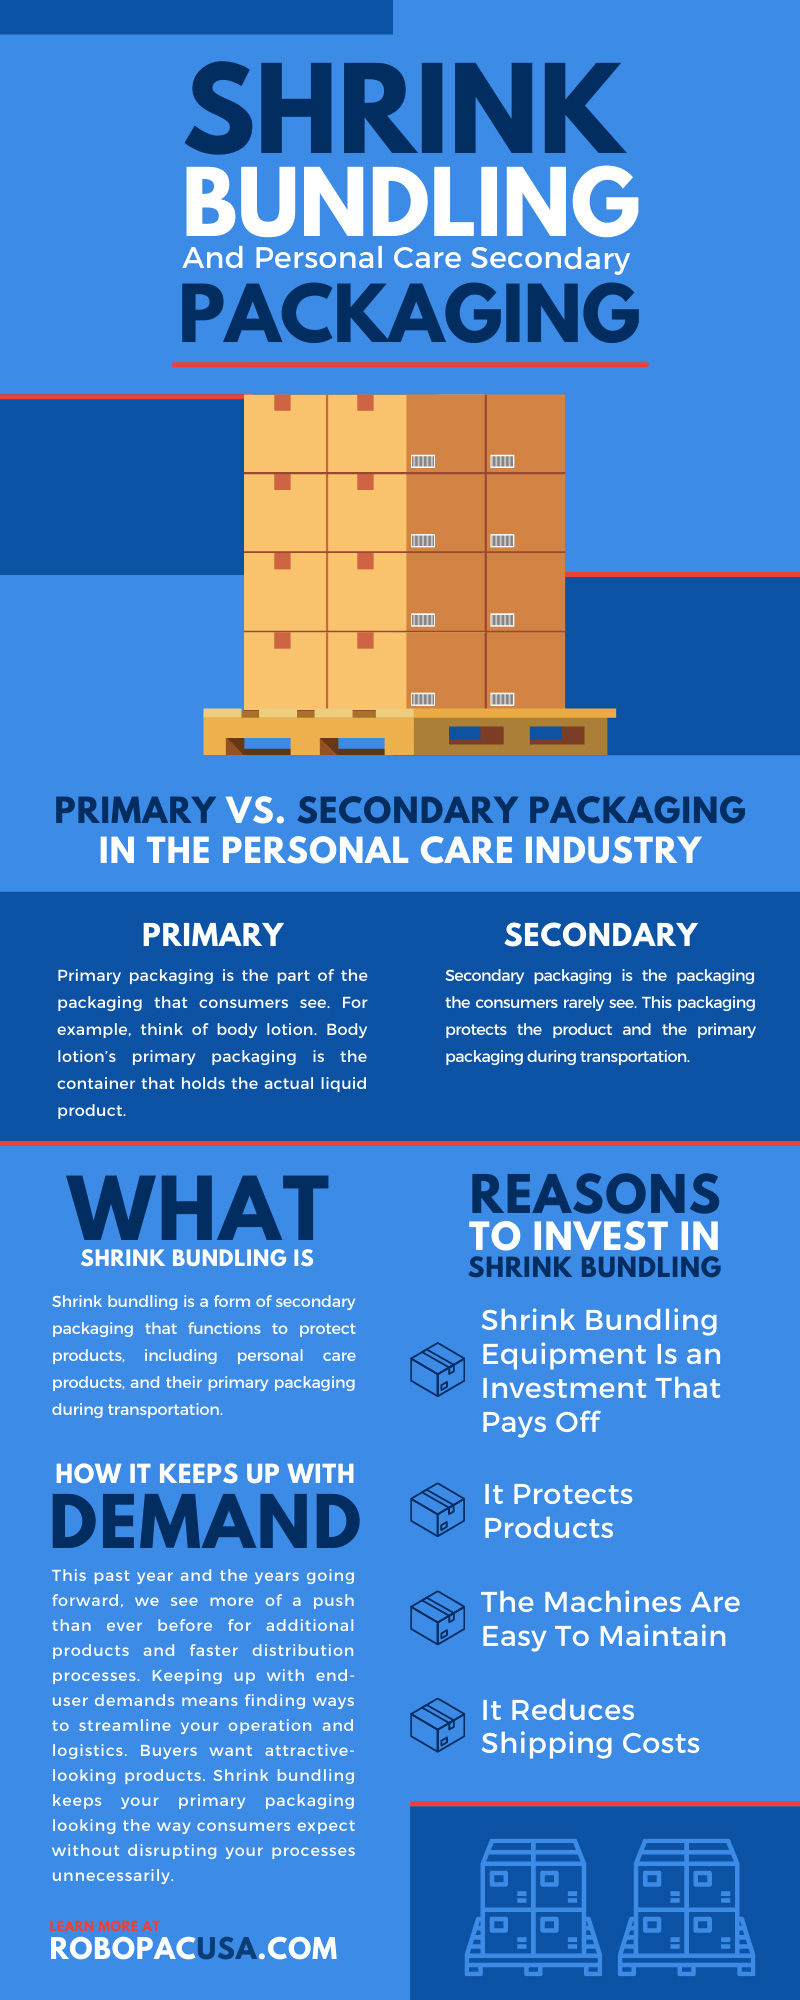 Shrink Bundling and Personal Care Secondary Packaging